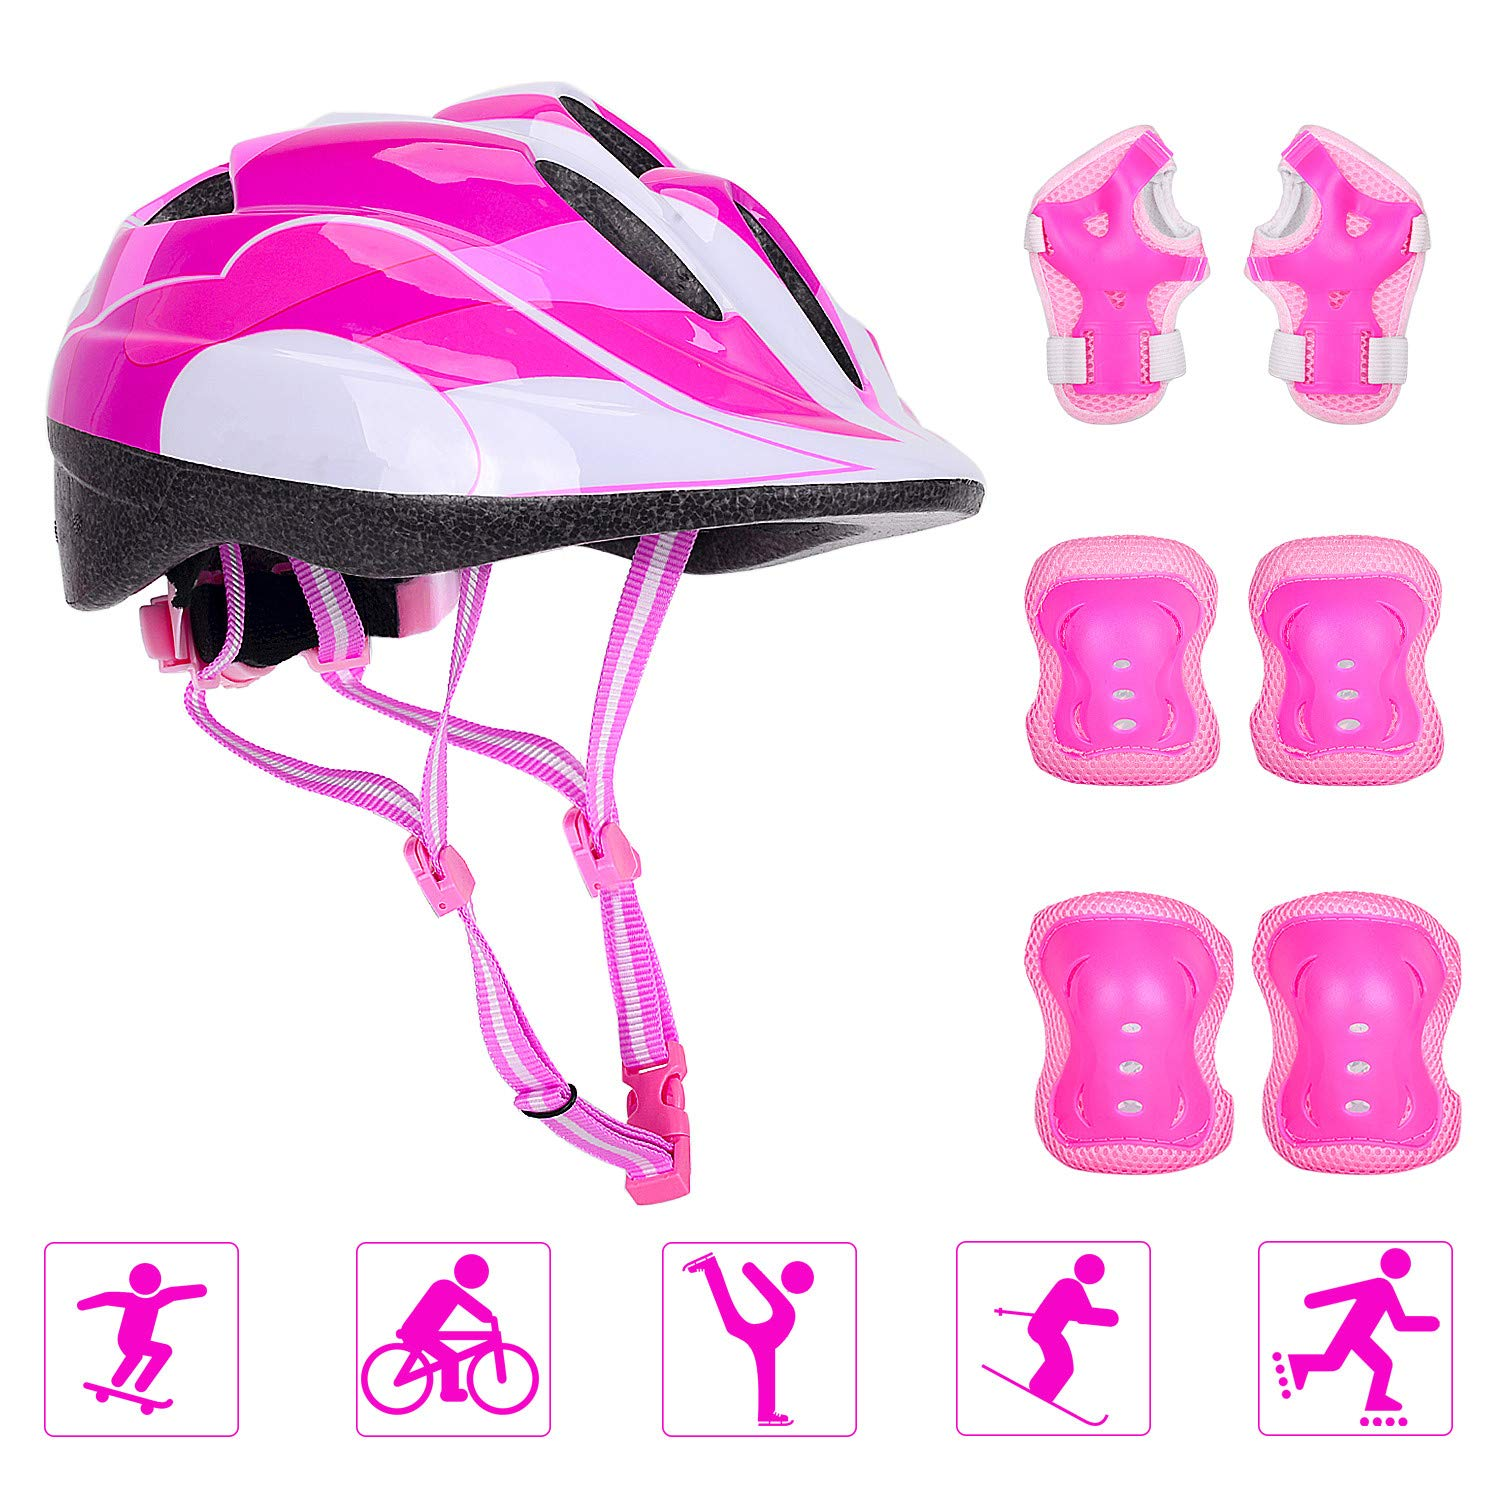 Adjustable Helmet Cycling Roller Skateboard Elbow Knee Pads Wrist Safety Protective Guard Gear Set for Children Aged 5-12 Years Old (Pink)